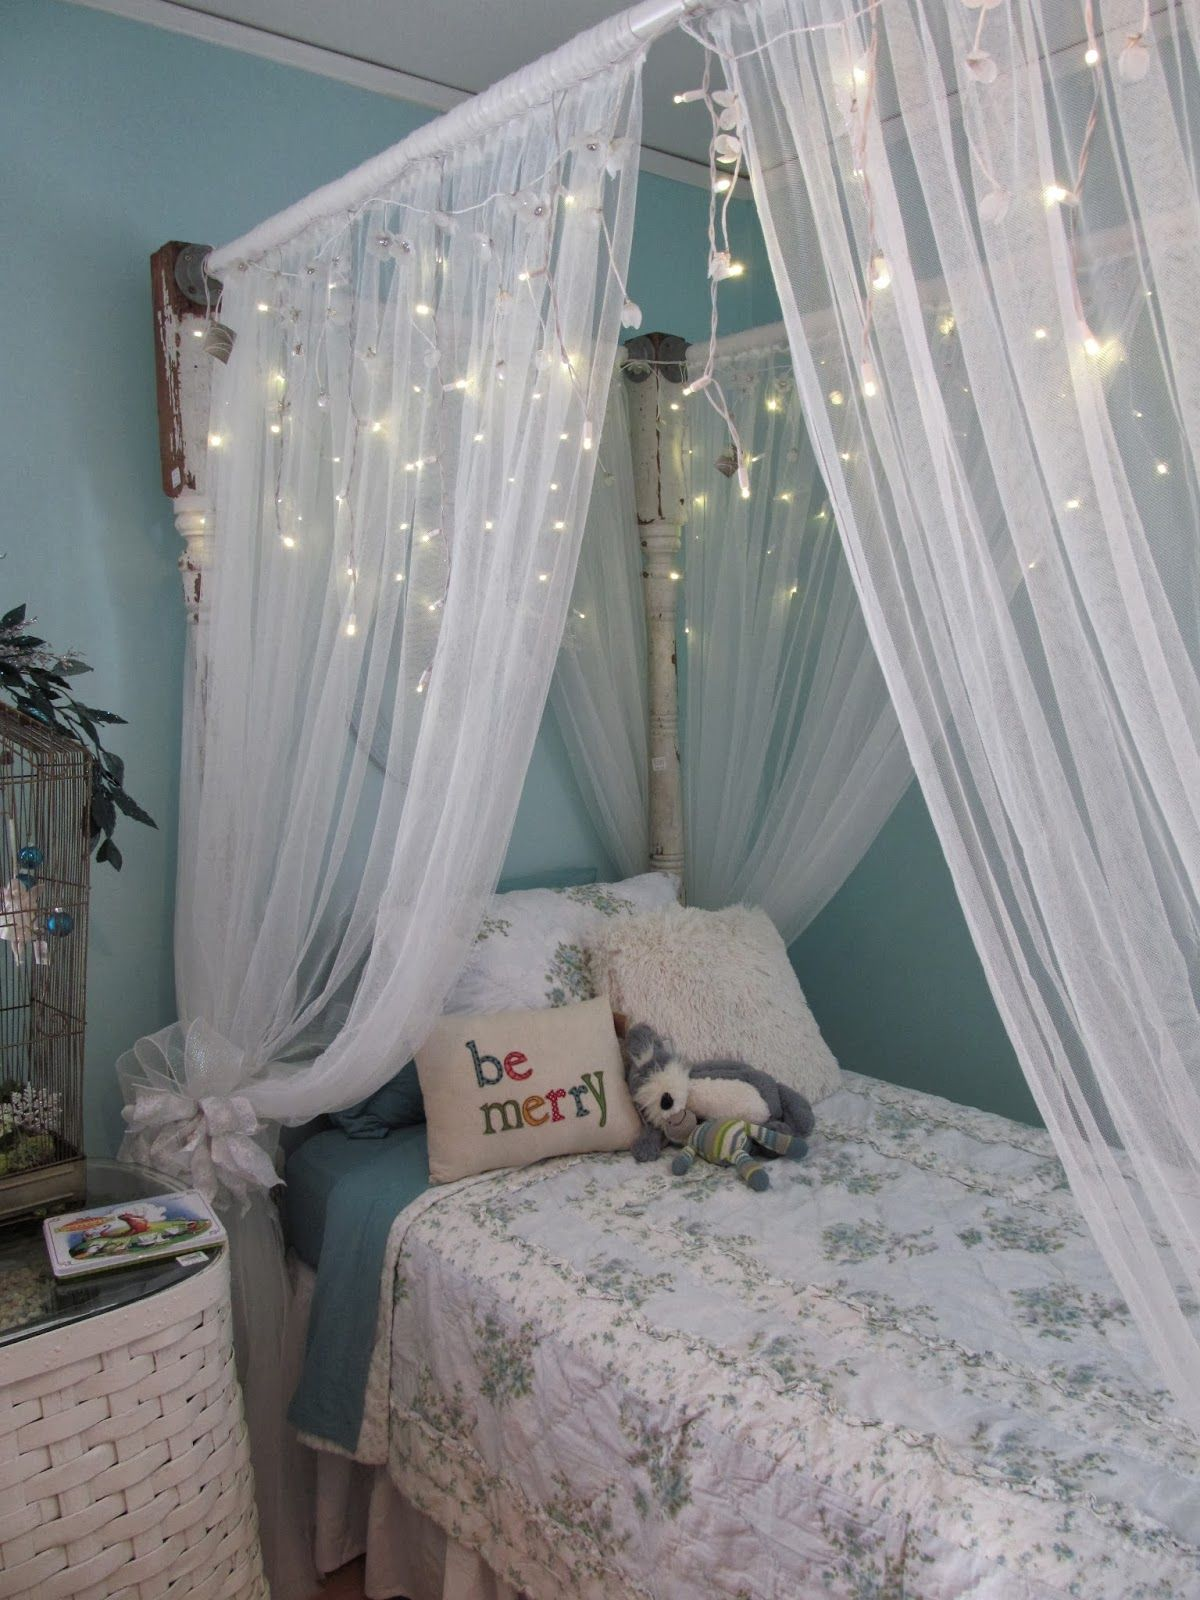 Bachman 39 s ideas house winter 2013 stuff to try frozen - Stuff for girls rooms ...